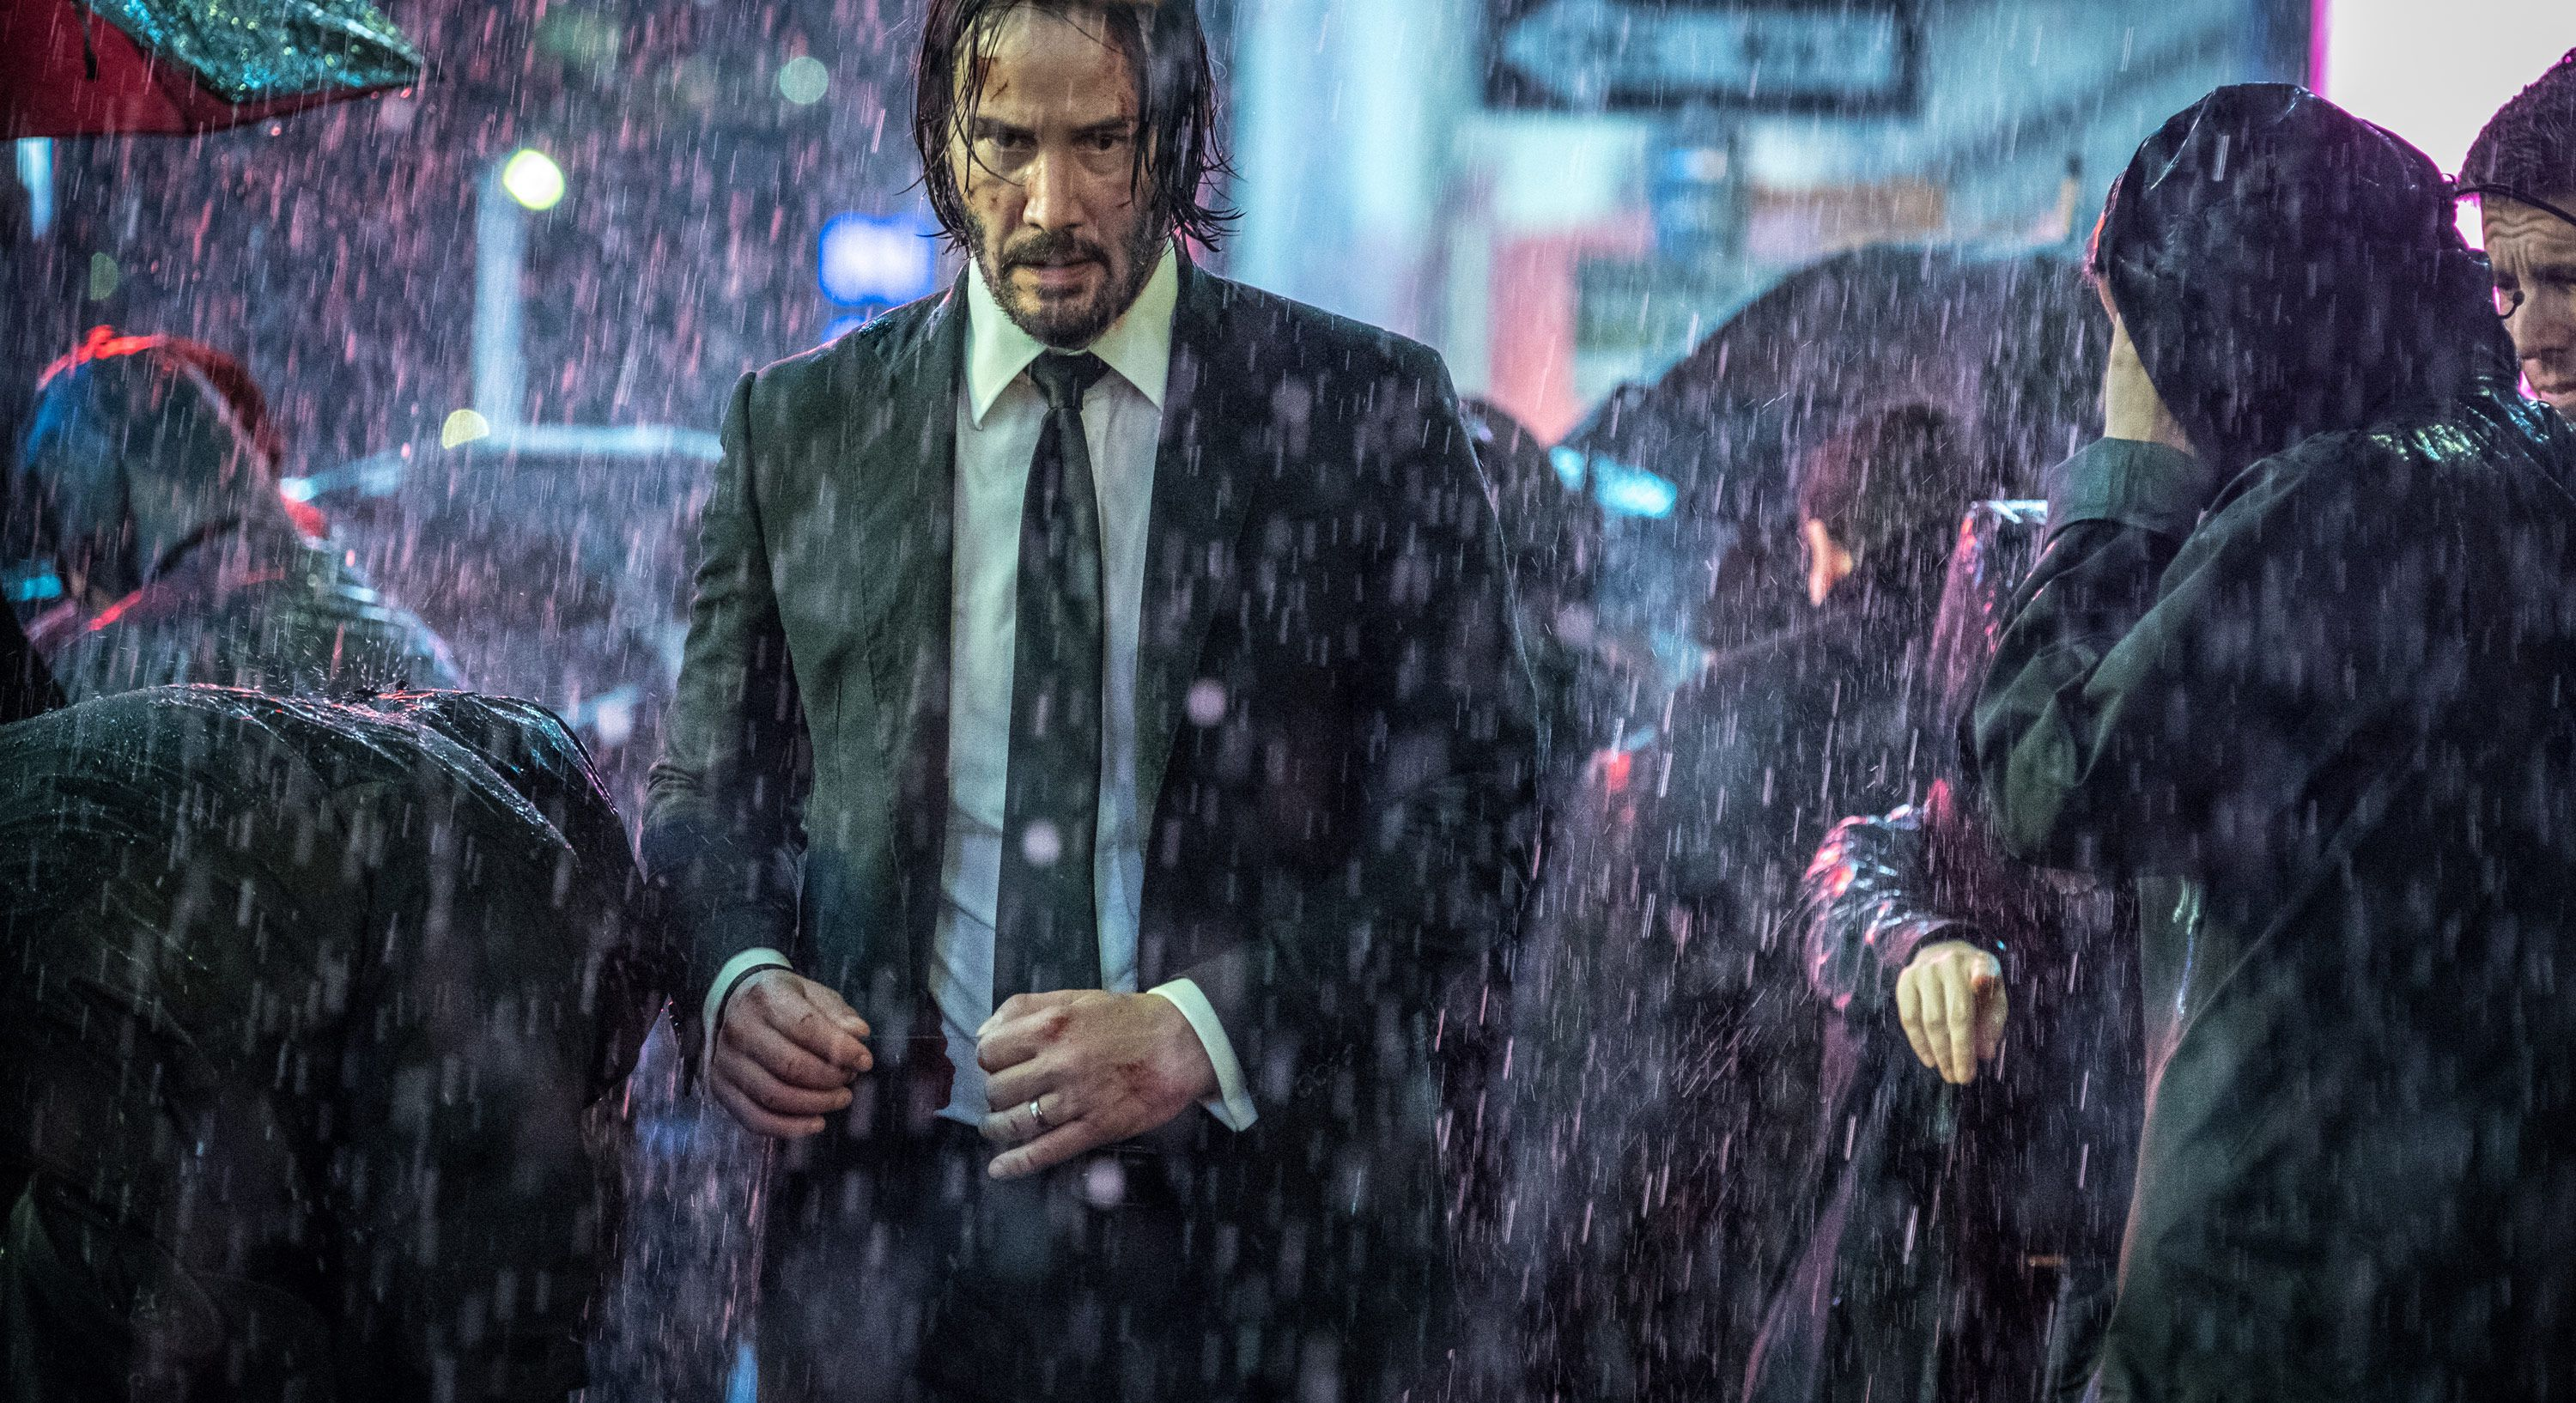 Lionsgate confirma John Wick: Chapter 4 para 2021 con Keanu Reeves